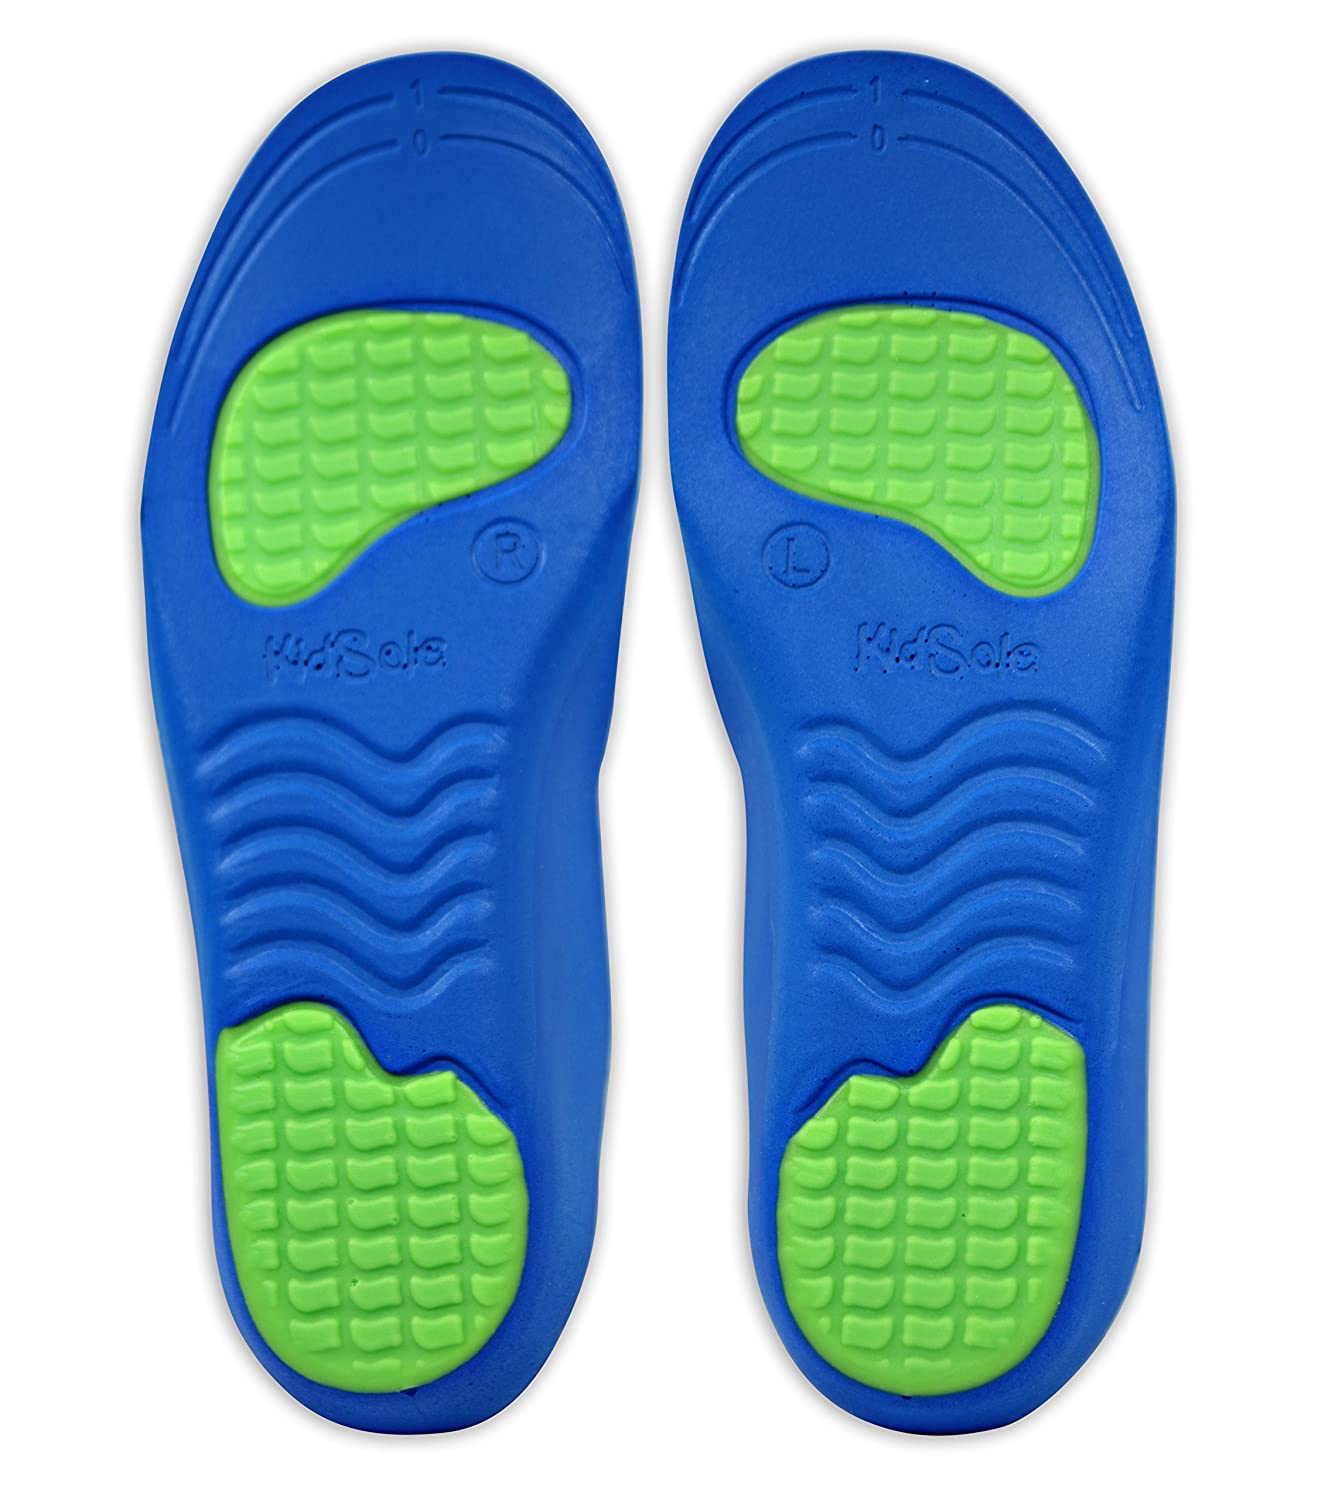 Kids Size 12-1.5 Neon Fix Premium Grade Orthotic Insole by KidSole For Flat Feet and Arch Support 20 CM